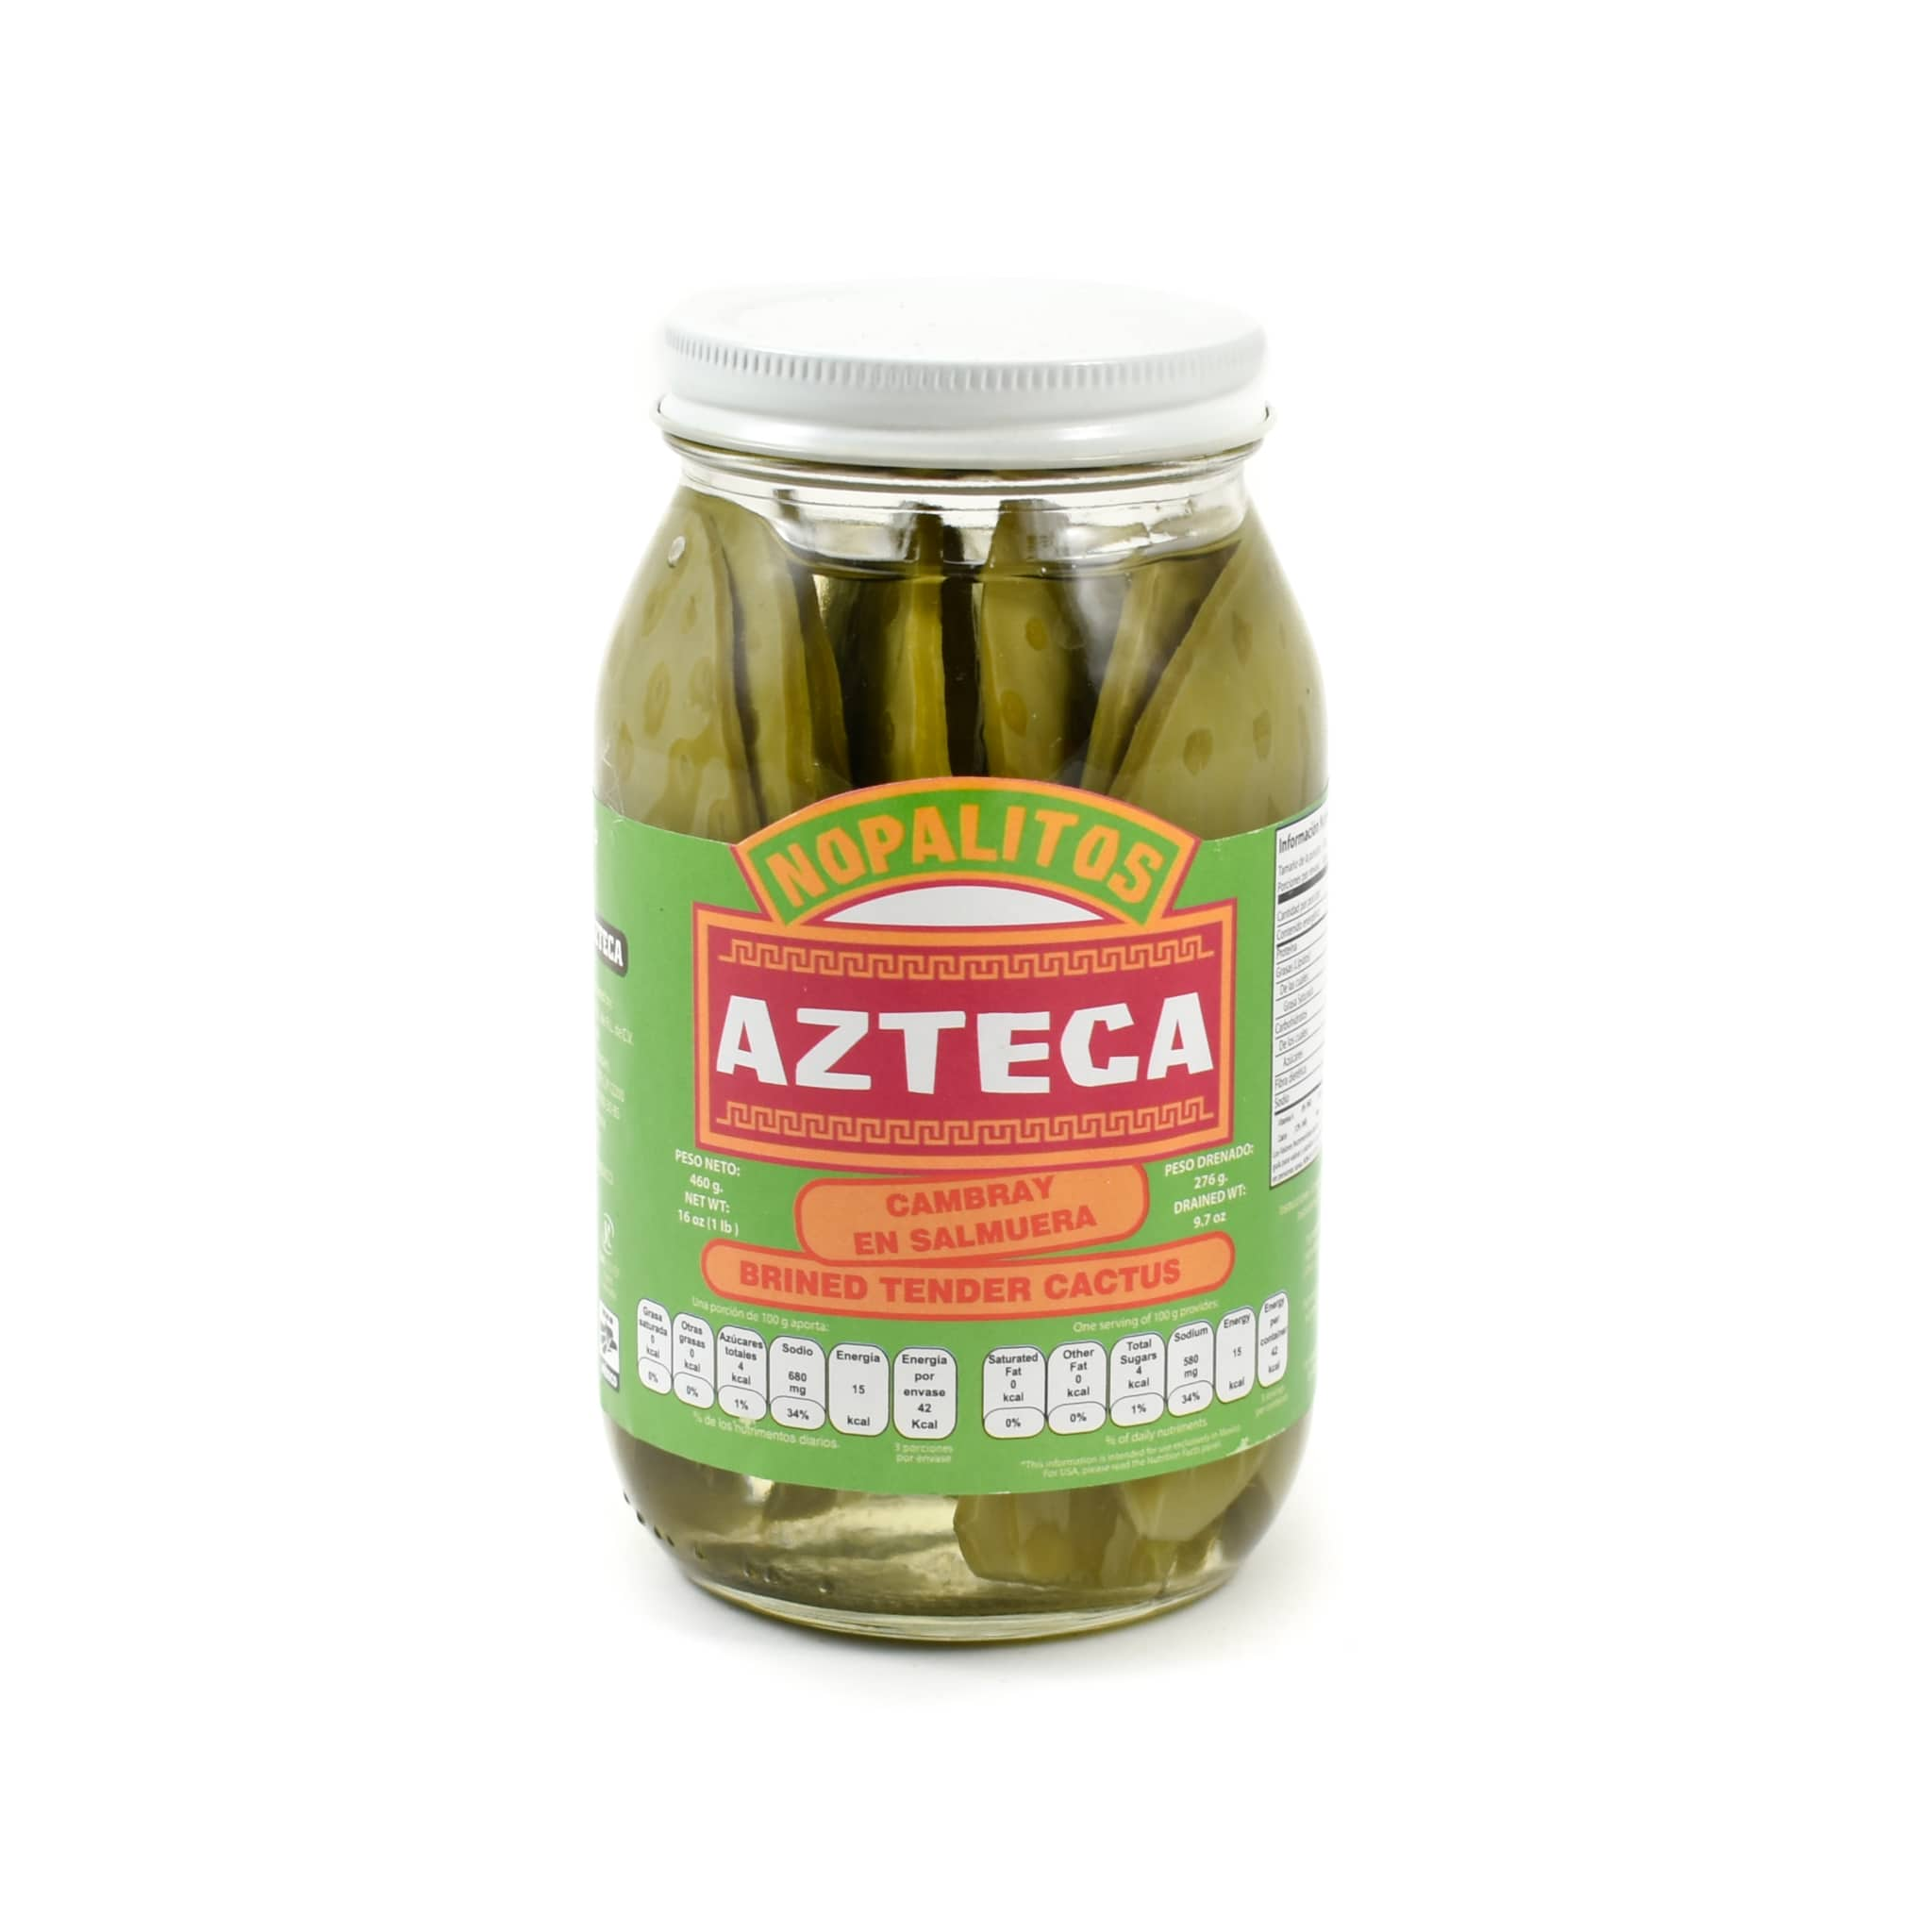 Azteca Cambray Whole Cactus Leaves 460g Mexican Food and Cooking